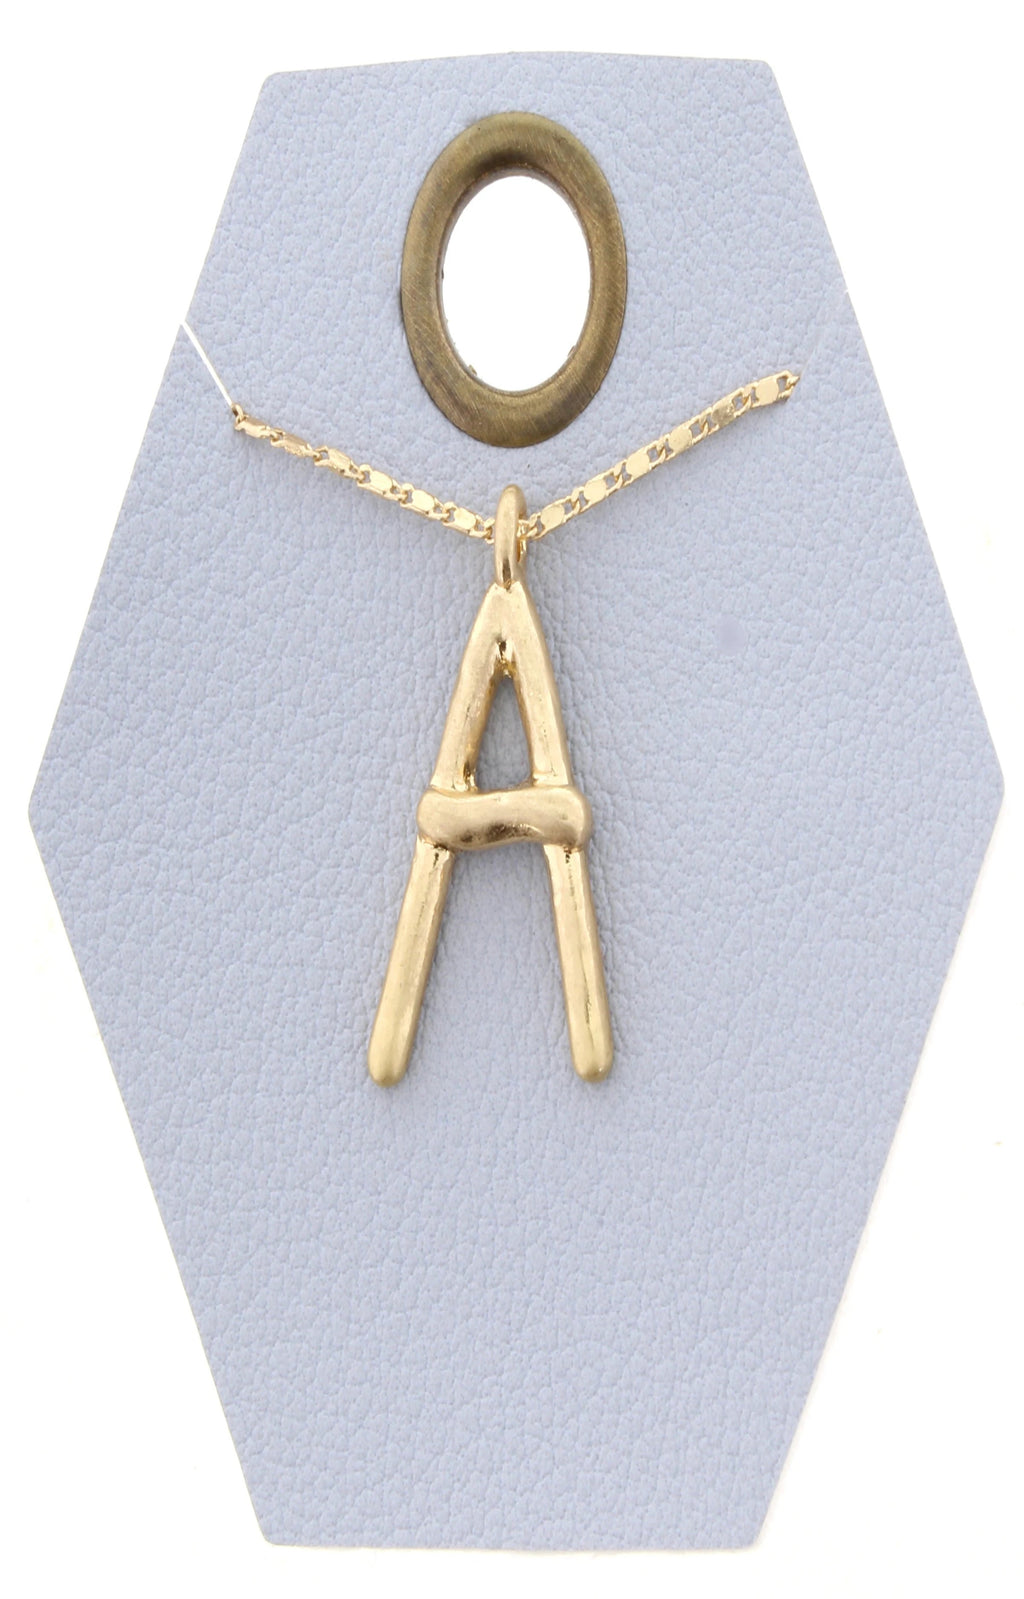 JM Say My Name Initial Necklace - Free Souls Boutique